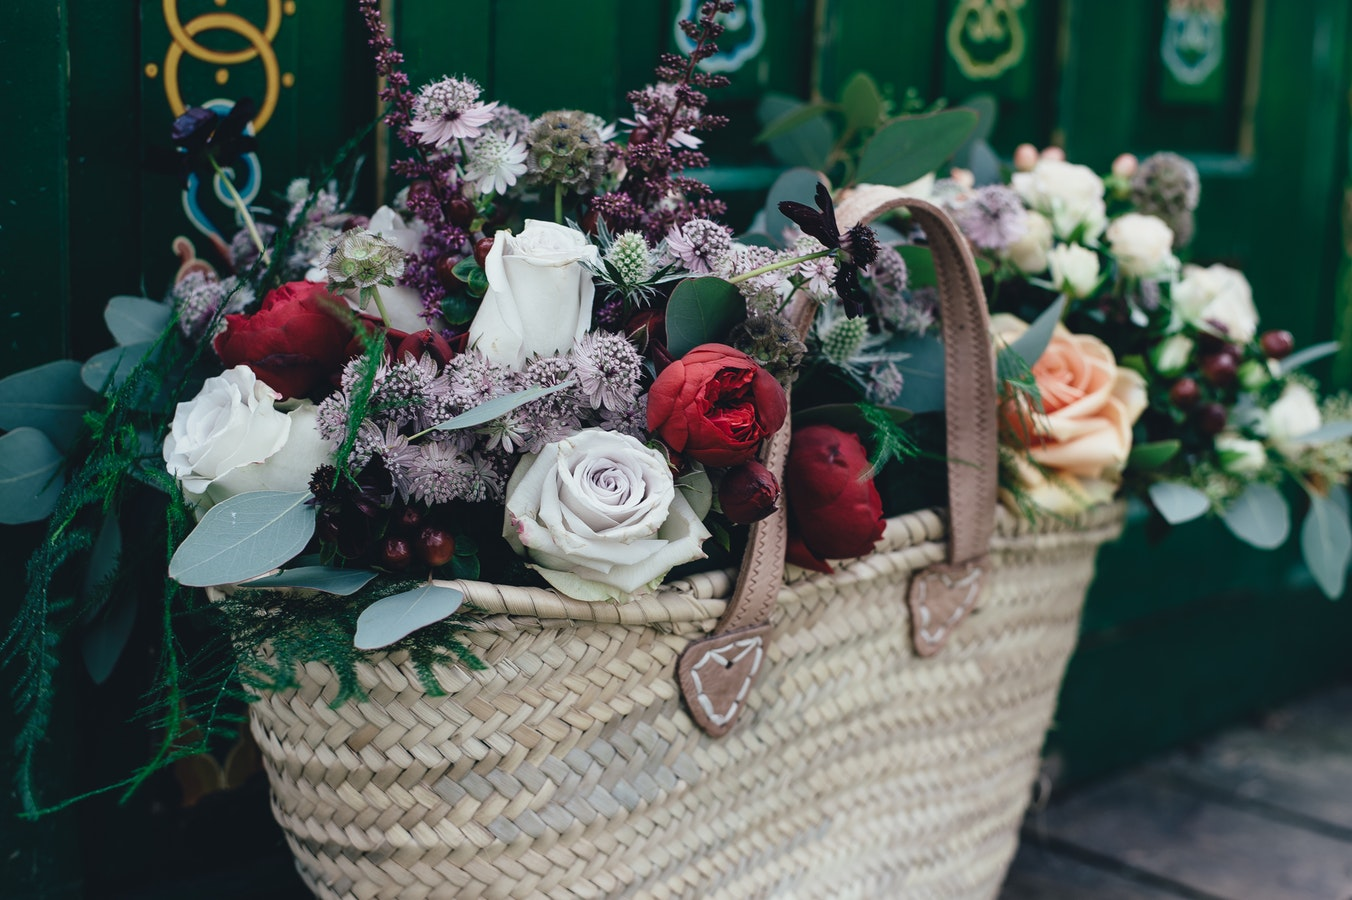 8 best options for flower delivery in dubai dubai blog 8 best options for flower delivery in dubai izmirmasajfo